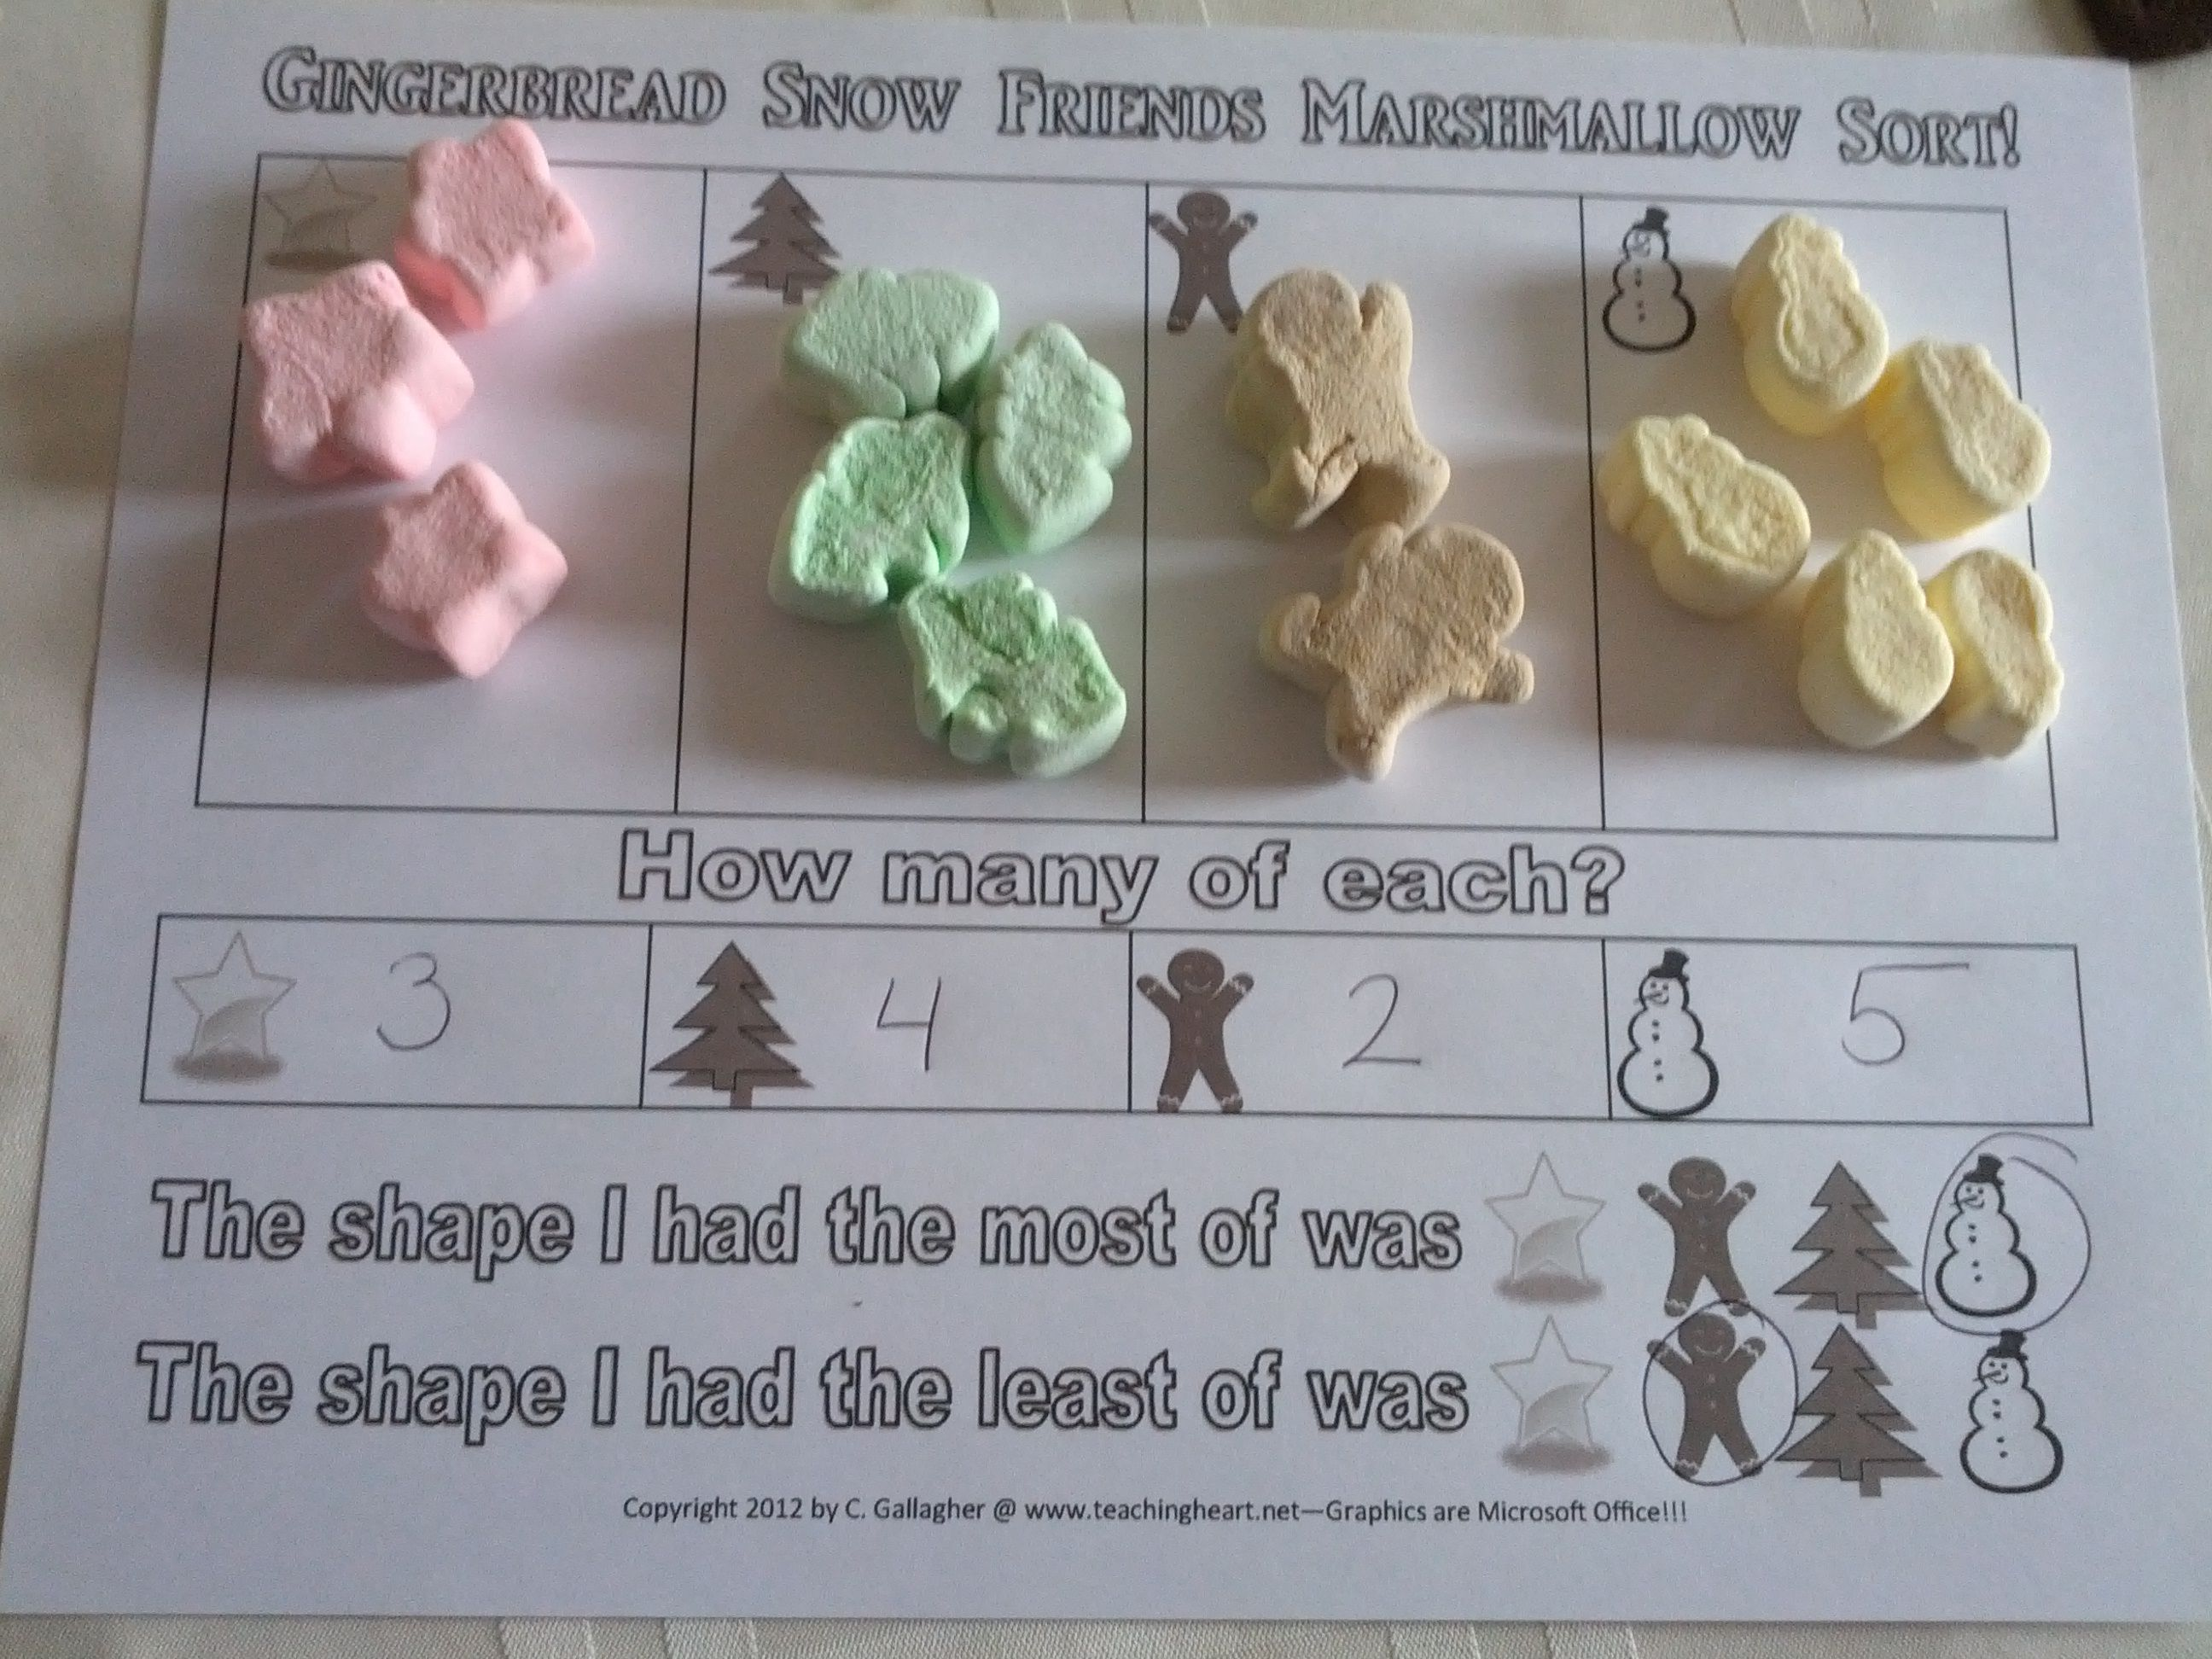 Holiday Gingerbread Snowman Marshmallows Graphing